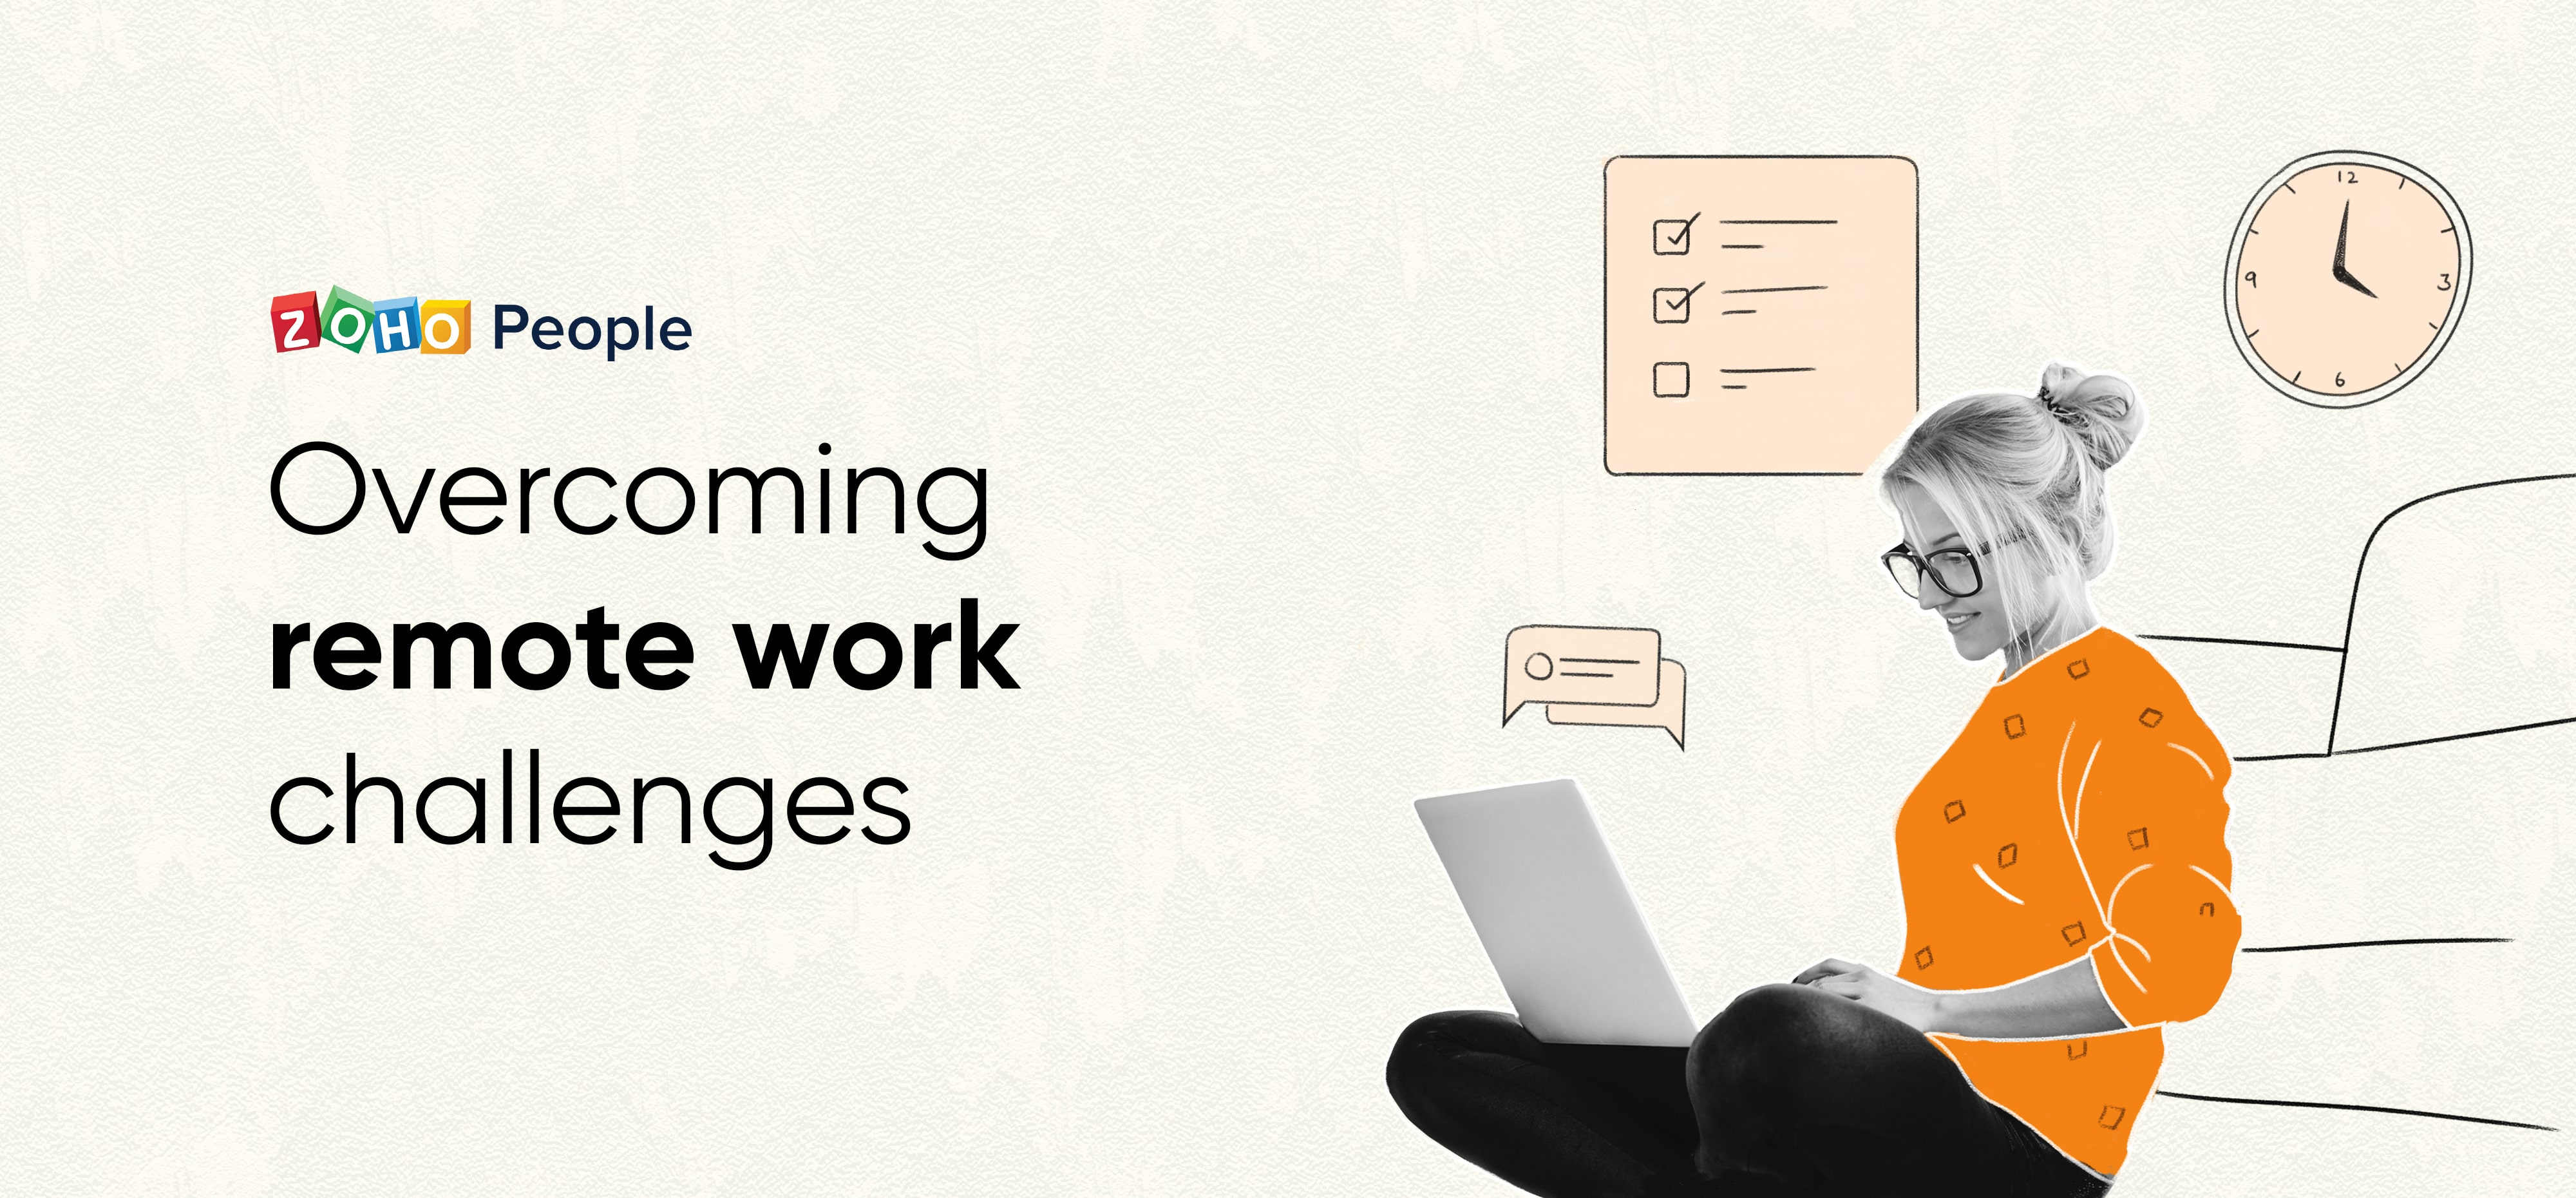 Here's how you can overcome remote work challenges